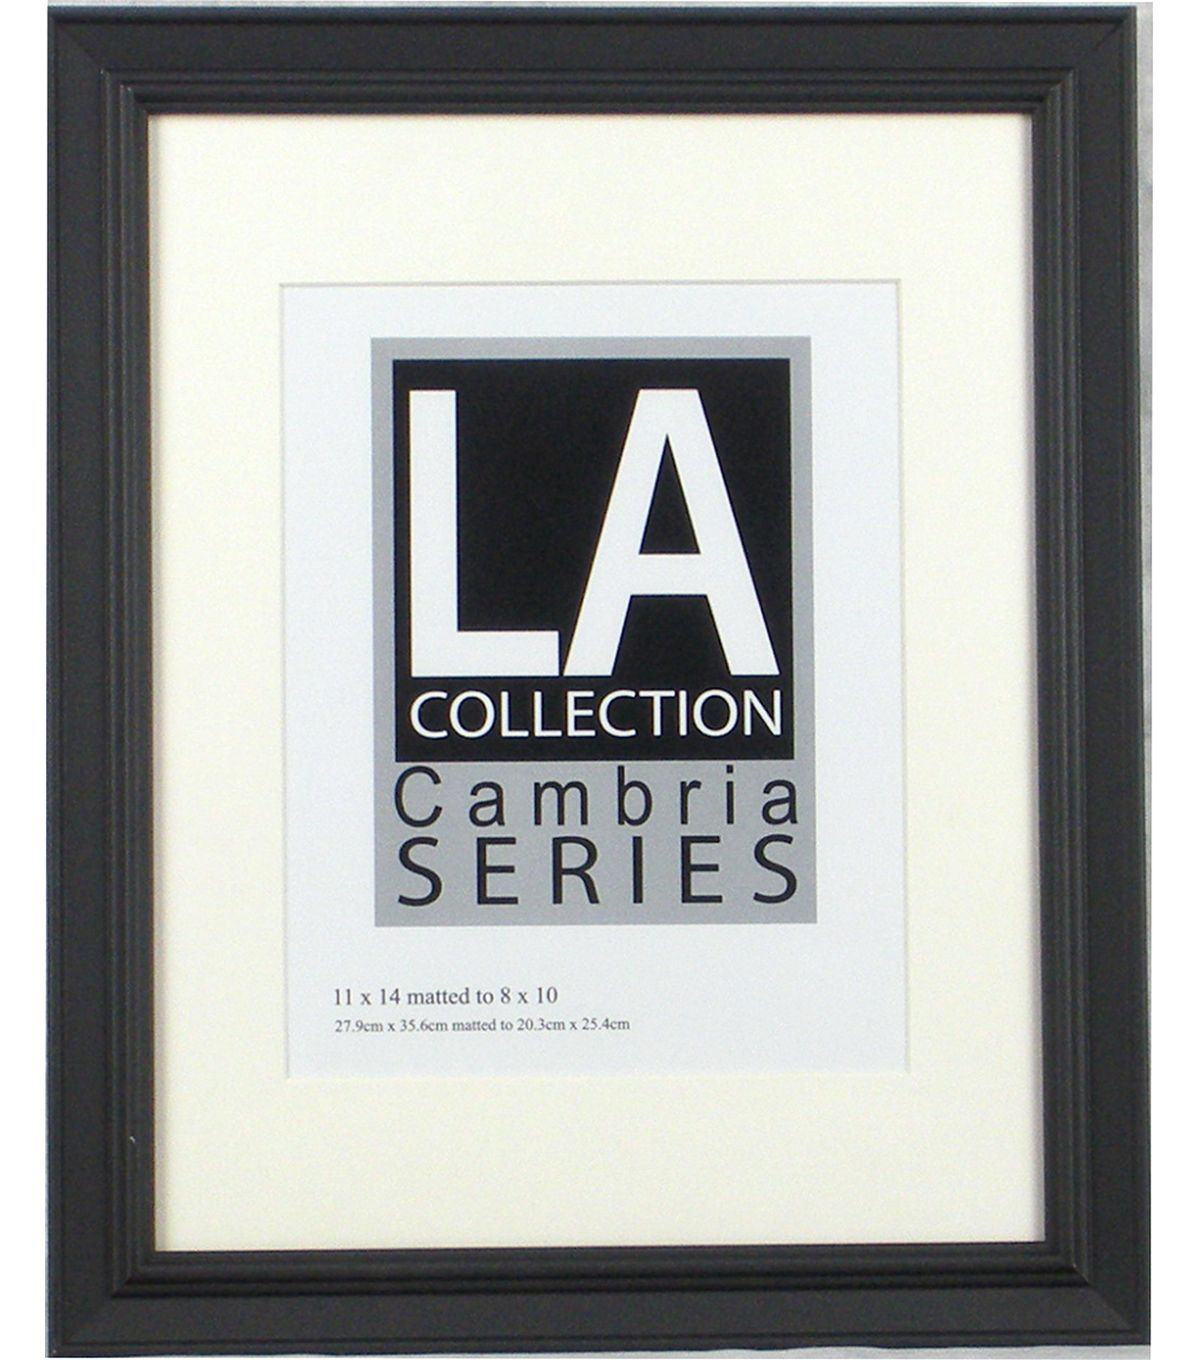 La Collection Wall Frame 11x14 Black Joann Frames On Wall Frame Photo Frame Wall